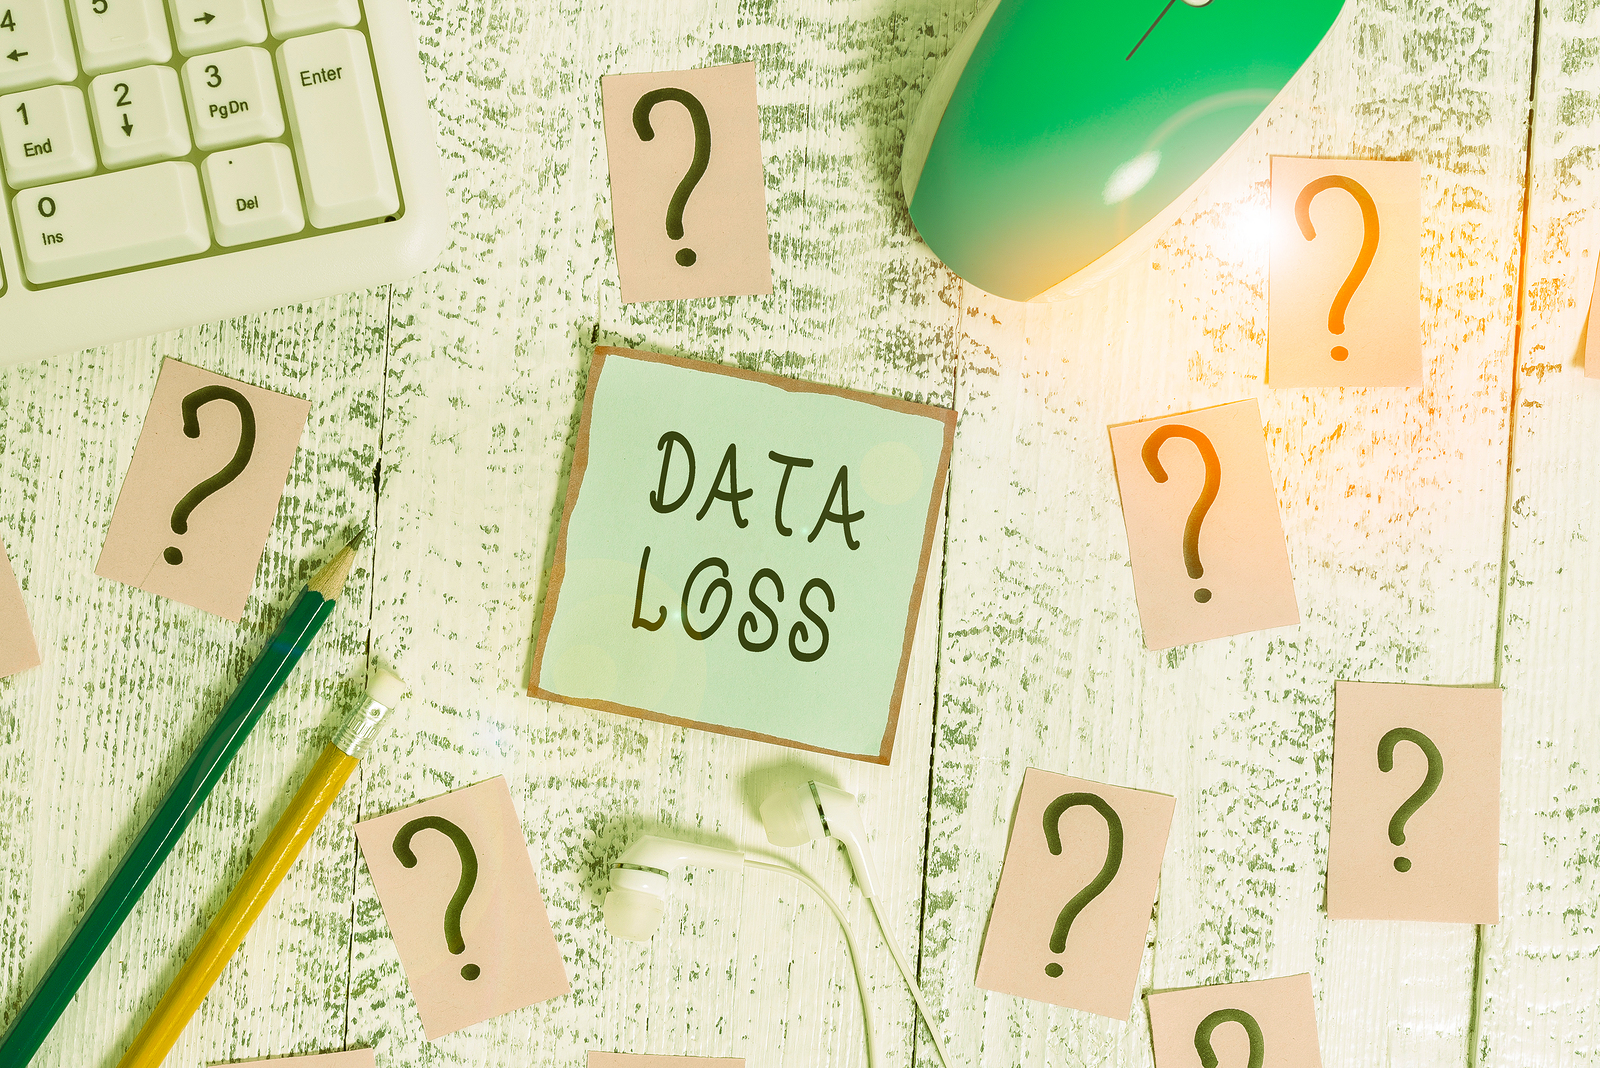 The Top 3 Mistakes That Lead to Data Loss